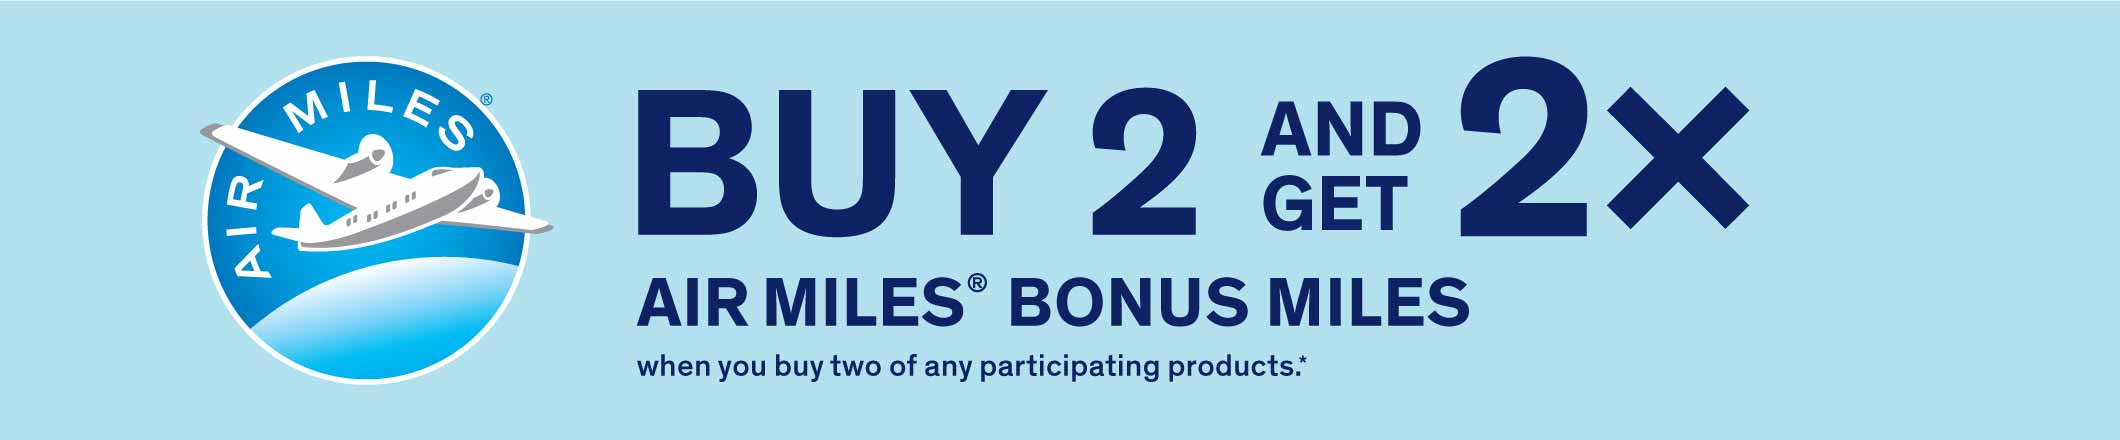 EPP Banner Buy 2 and Get 2x Air Miles